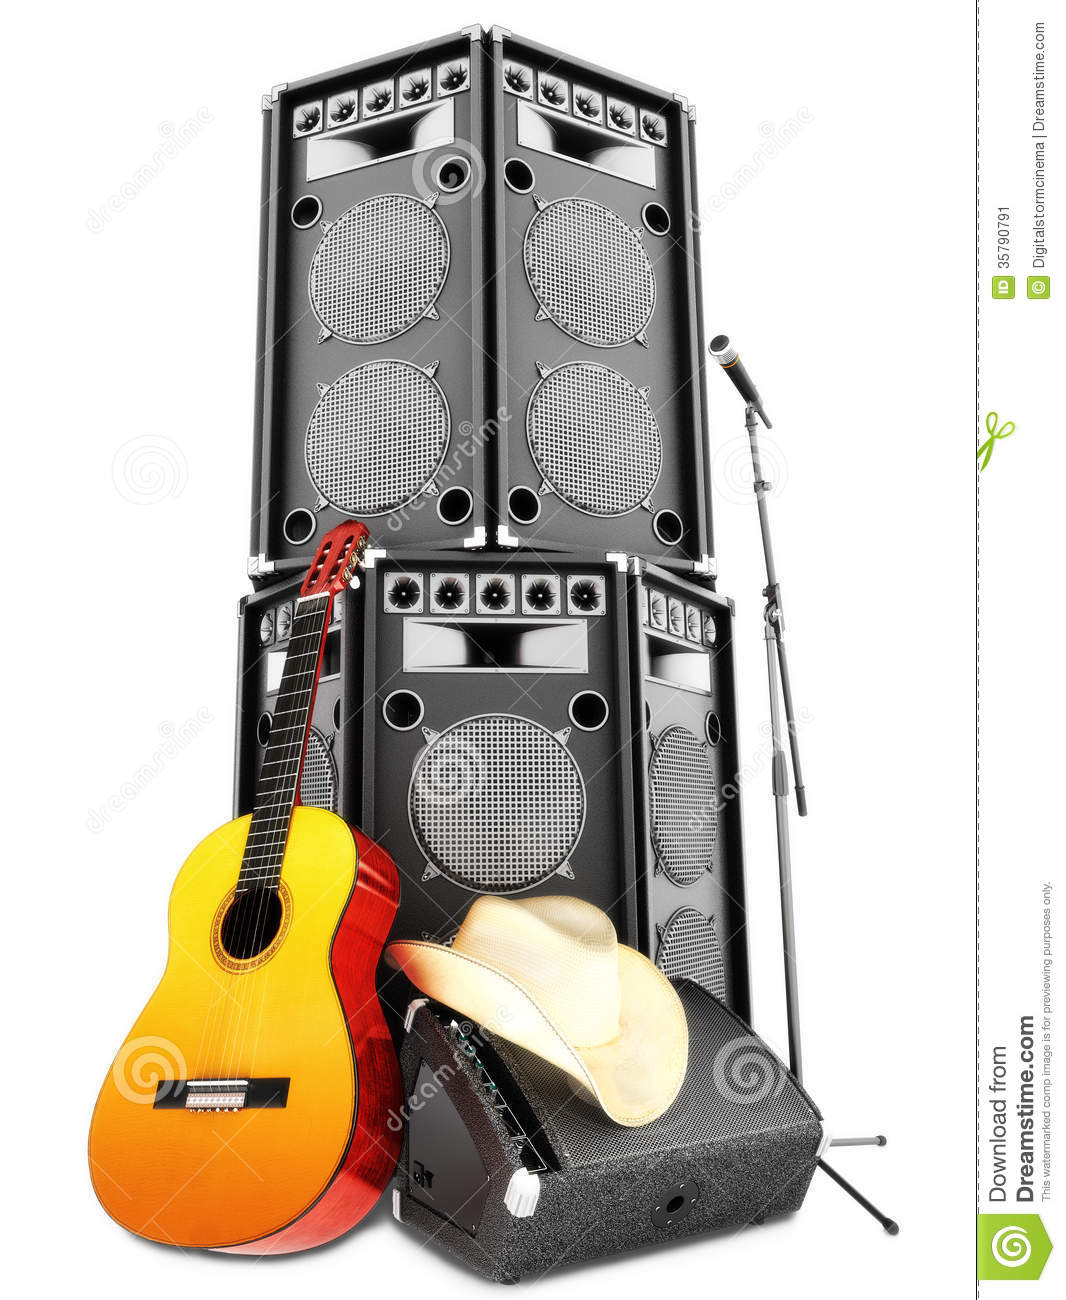 Country Music Wallpaper: Country Music Background Stock Illustration. Illustration